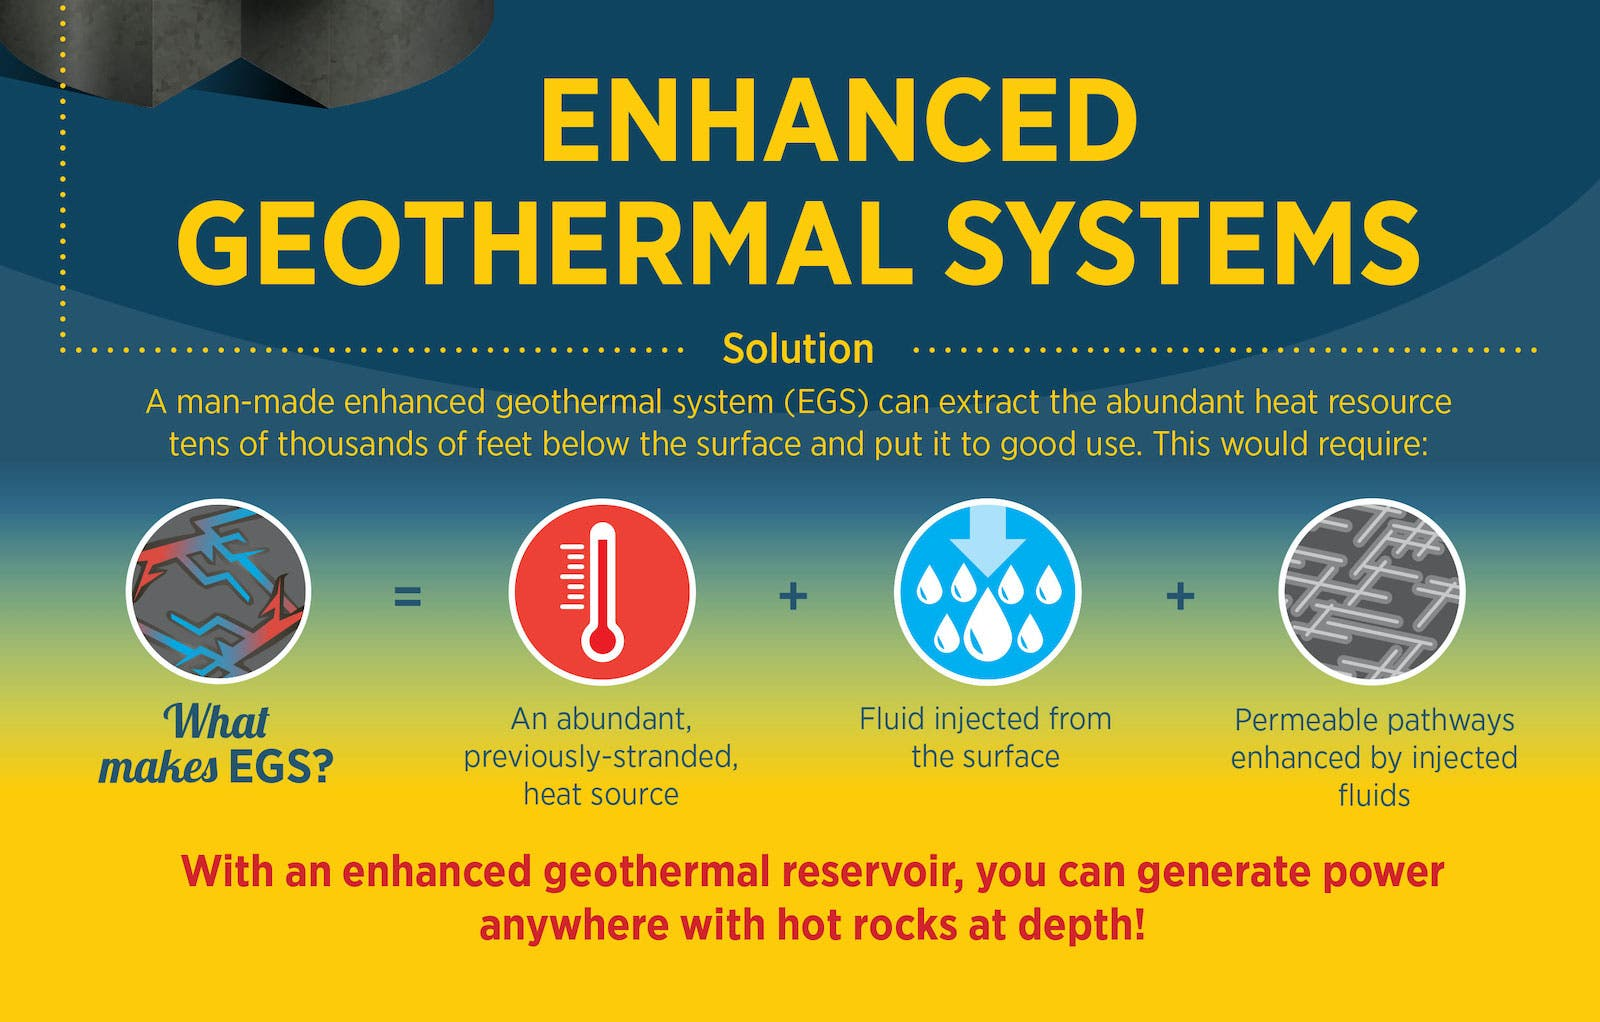 geothermal energy systems enhanced